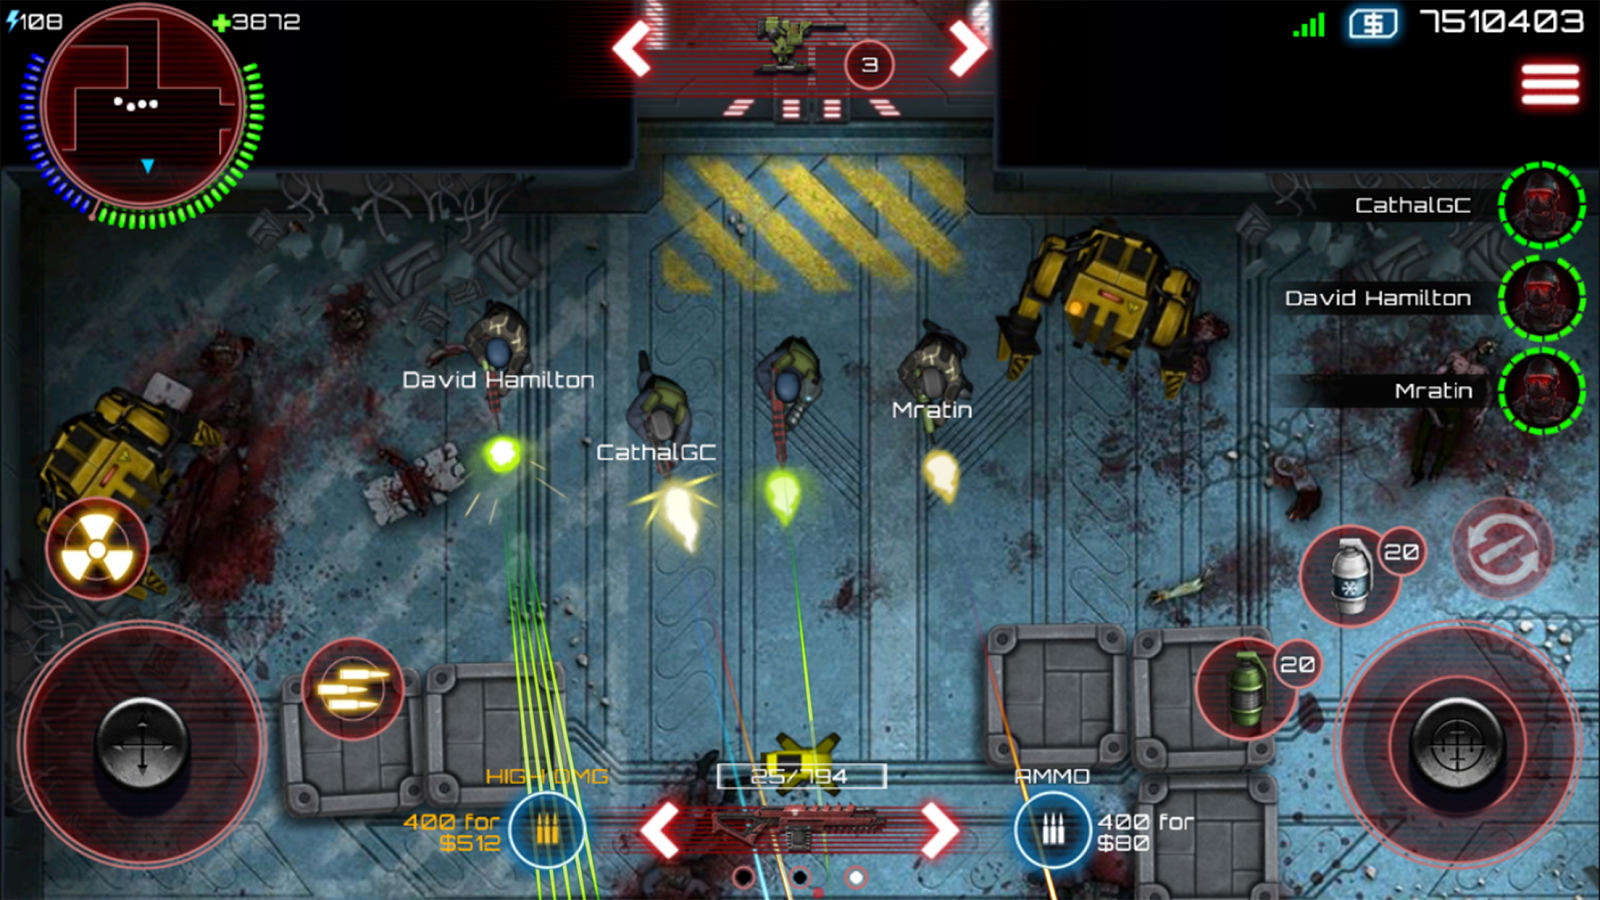 Download SAS Zombie Assault 4 MOD APK terbaru